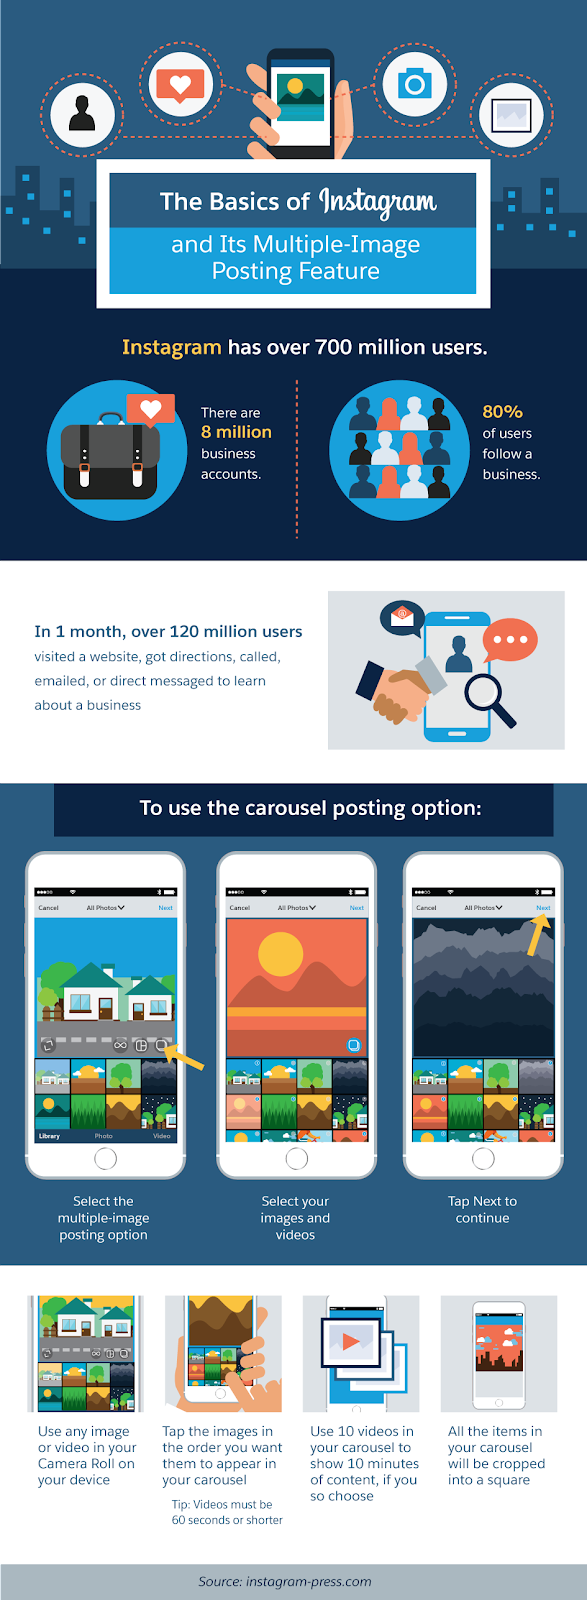 8-Creative-Ways-to-Use-Instagram-graphic1.png